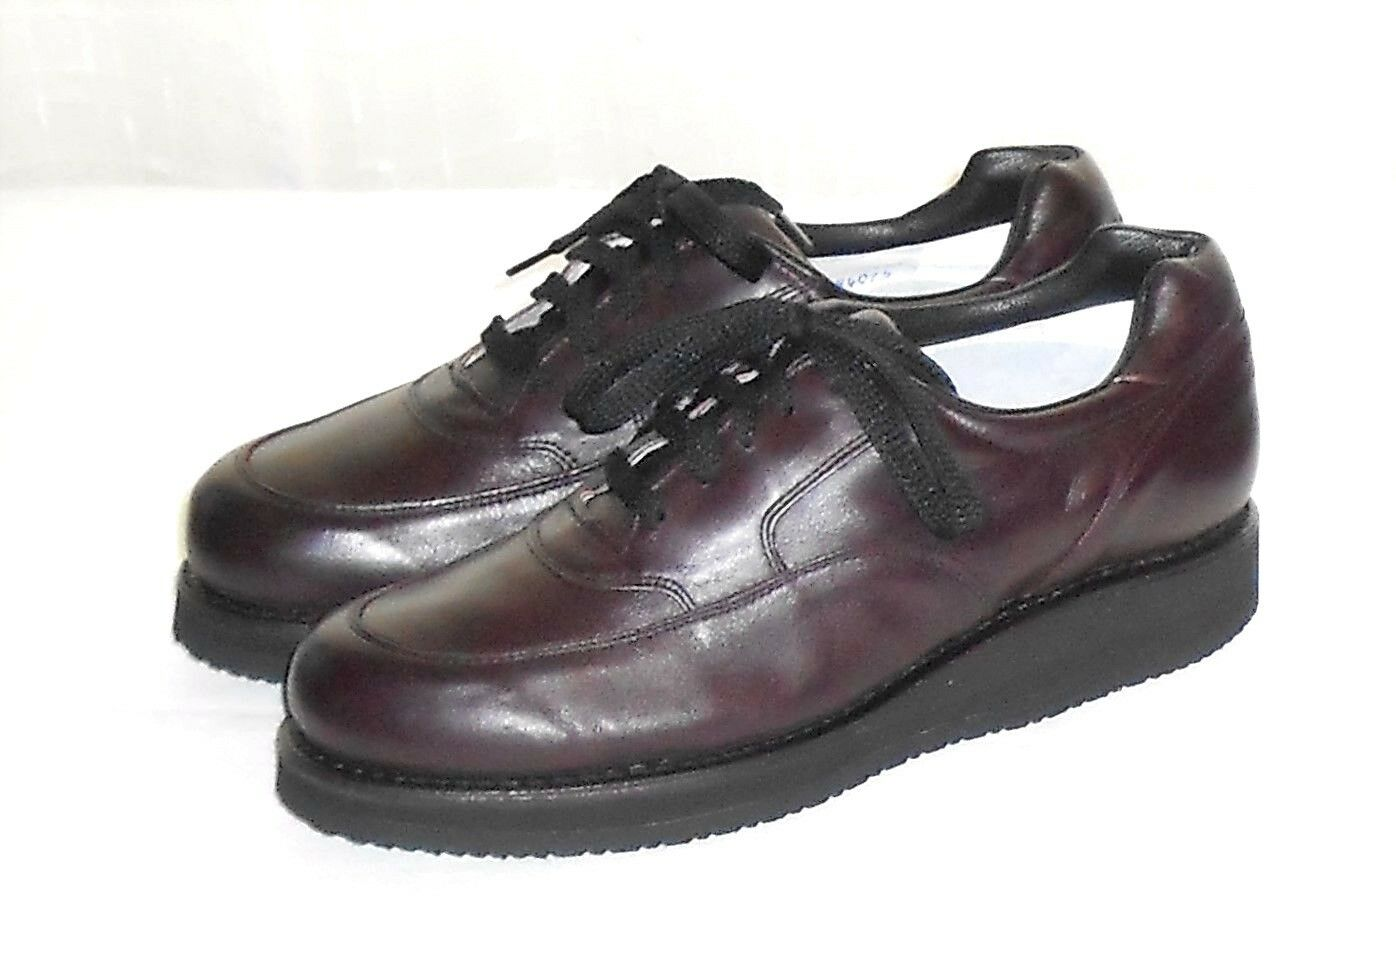 P W Minor Extra Depth Burgundy Leather Comfort Walking Oxford Men's 7.5 D/A